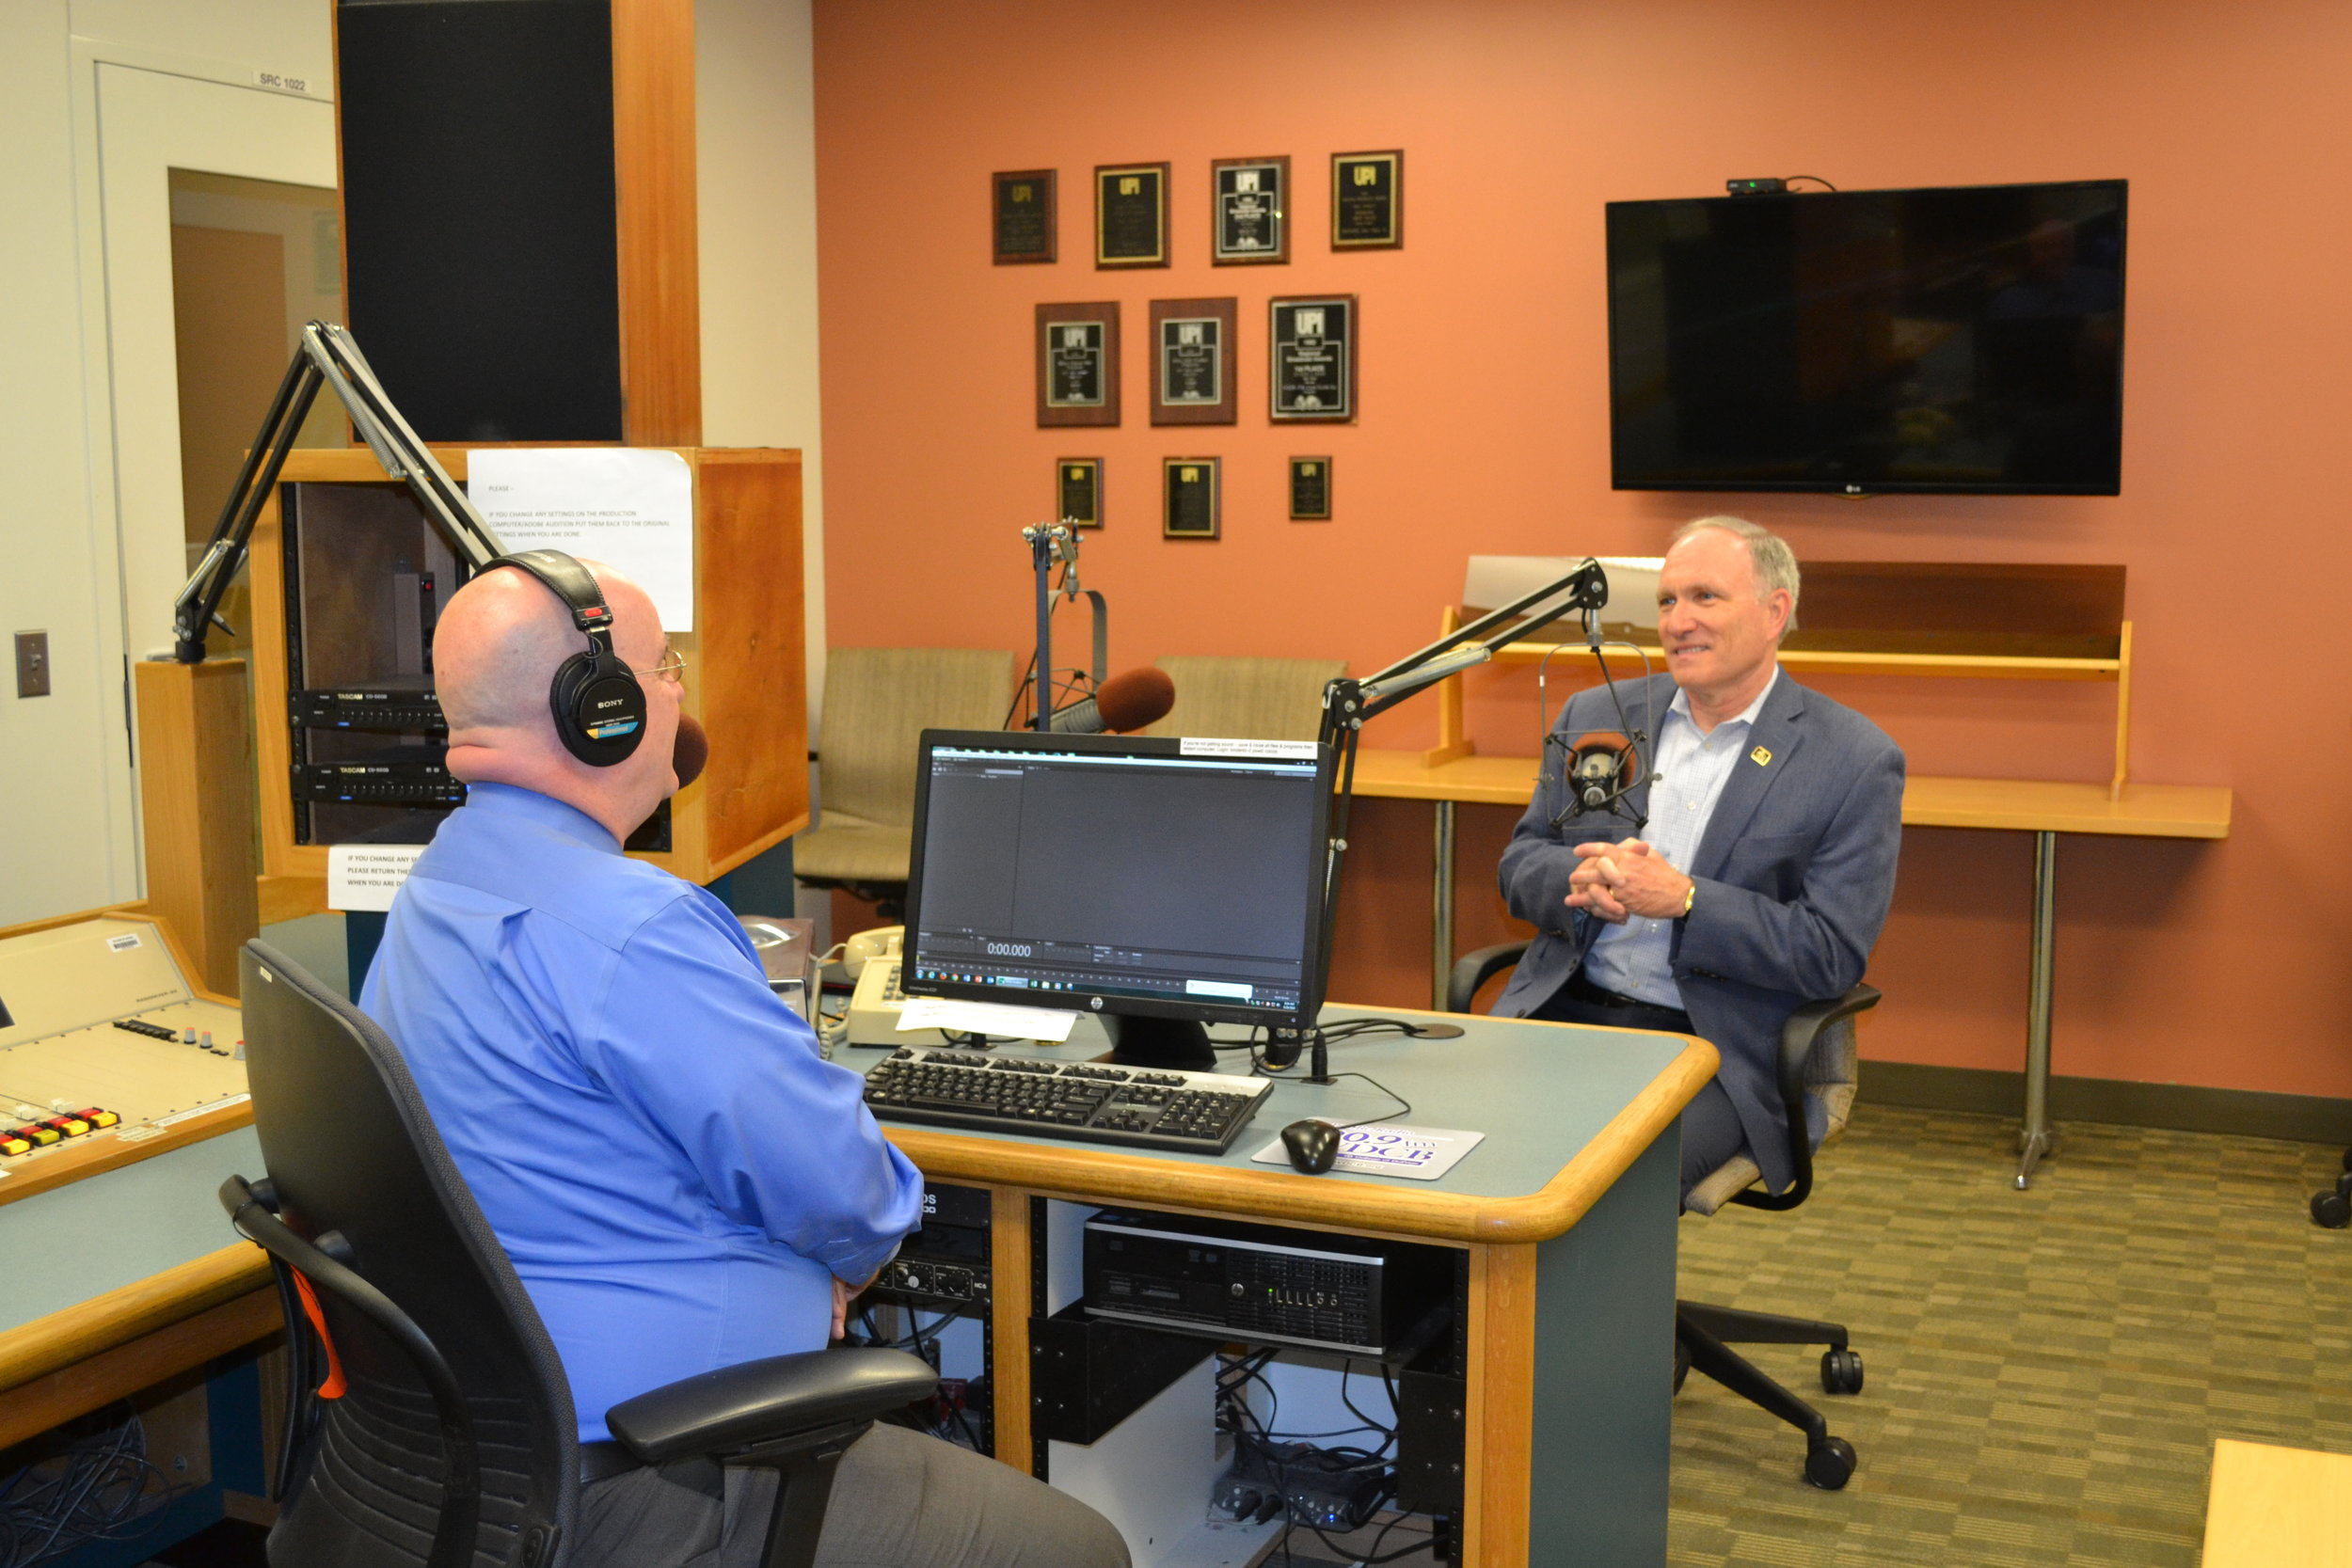 College of DuPage interim president Dr. Brian Caputo joined First Light host Brian O'Keefe in the studio for a discussion of his priorities. The COD Board will formally high Caputo as the college's 7th president later this month